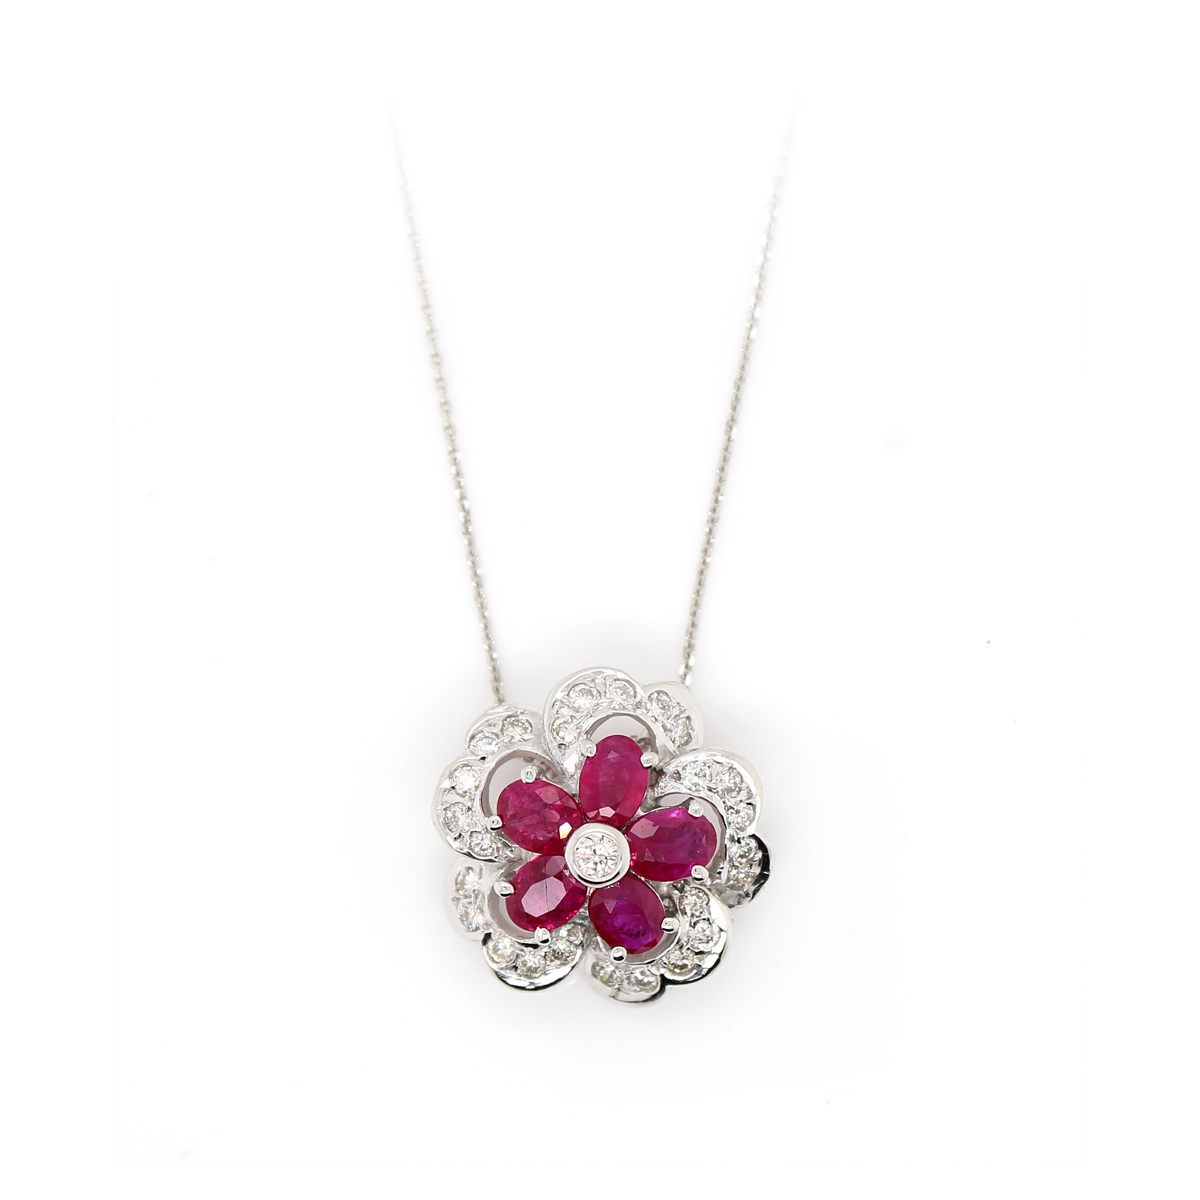 Vintage 18 Karat White Gold Ruby and Diamond Flower Pendant Necklace